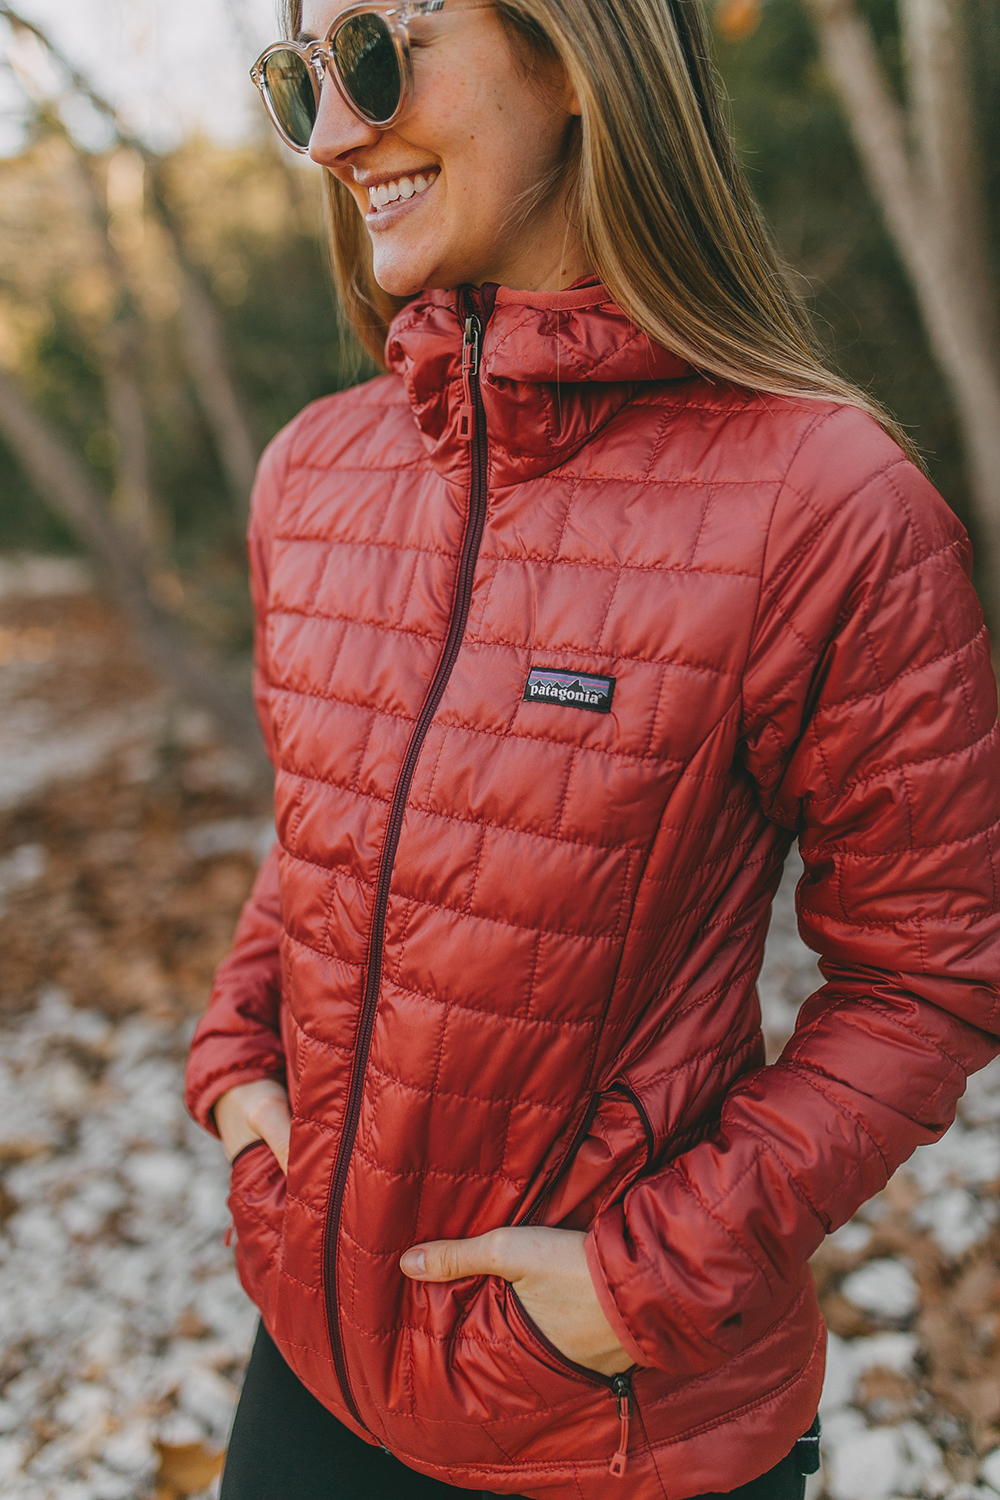 livvyland-blog-olivia-watson-austin-texas-hike-patagonia-nano-puff-hooded-insulated-jacket-2